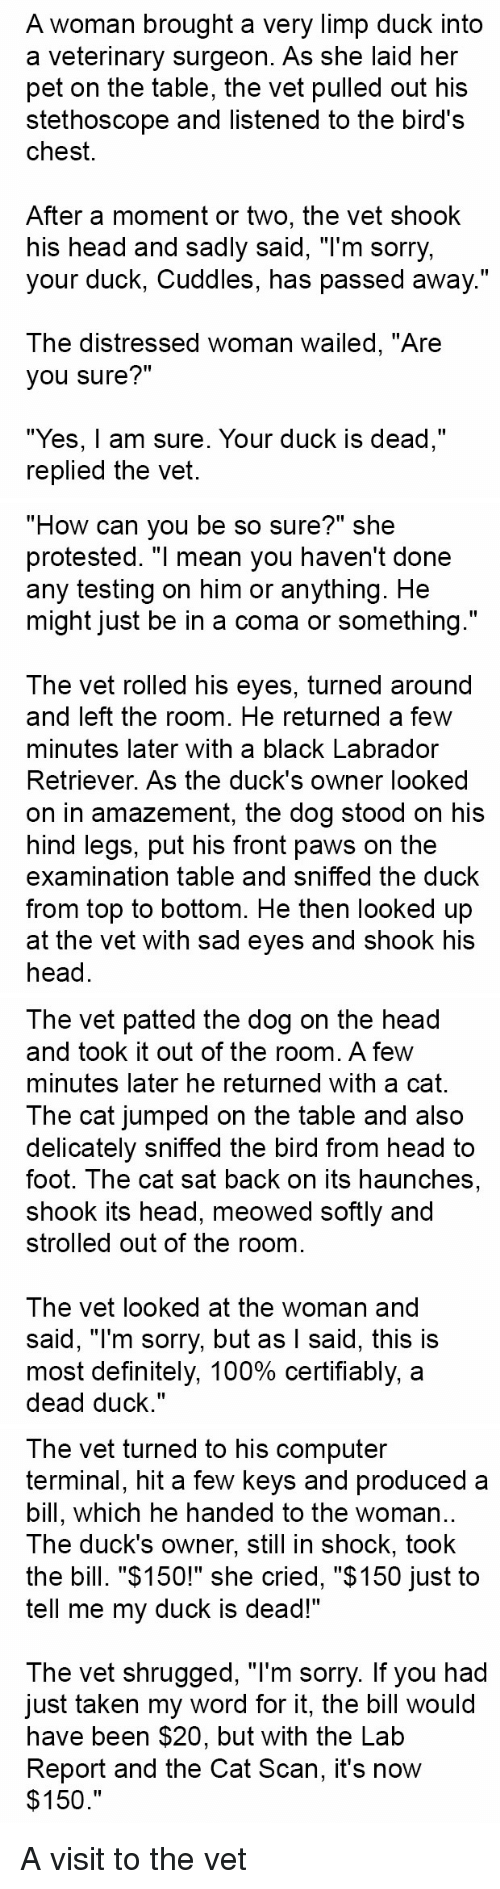 """cat scan: A woman brought a very limp duck into  a veterinary surgeon. As she laid her  pet on the table, the vet pulled out his  stethoscope and listened to the bird's  chest.  After a moment or two, the vet shook  his head and sadly said, """"I'm sorry,  your duck, Cuddles, has passed away.""""  The distressed woman wailed, """"Are  you sure?""""  """"Yes, am sure. Your duck is dead,""""  replied the vet.   """"How can you be so sure?"""" she  protested. """"I mean you haven't done  any testing on him or anything. He  might just be in a coma or something.""""  The vet rolled his eyes, turned around  and left the room. He returned a few  minutes later with a black Labrador  Retriever. As the duck's owner looked  on in amazement, the dog stood on his  hind legs, put his front paws on the  examination table and sniffed the duck  from top to bottom. He then looked up  at the vet with sad eyes and shook his  head   The vet patted the dog on the head  and took it out of the room. A few  minutes later he returned with a cat.  The cat jumped on the table and also  delicately sniffed the bird from head to  foot. The cat sat back on its haunches  shook its head, meowed softly and  strolled out of the room  The vet looked at the woman and  said, """"I'm sorry, but as I said, this is  most definitely, 100% certifiably, a  dead duck.""""   The vet turned to his computer  terminal, hit a few keys and produced a  bill, which he handed to the woman  The duck's owner, still in shock, took  the bill. """"$150!"""" she cried, """"$150 just to  tell me my duck is dead!""""  The vet shrugged, """"l'm sorry. If you had  Just taken my word for it, the bill Would  have been $20, but with the Lab  Report and the Cat Scan, it's now  $150 A visit to the vet"""